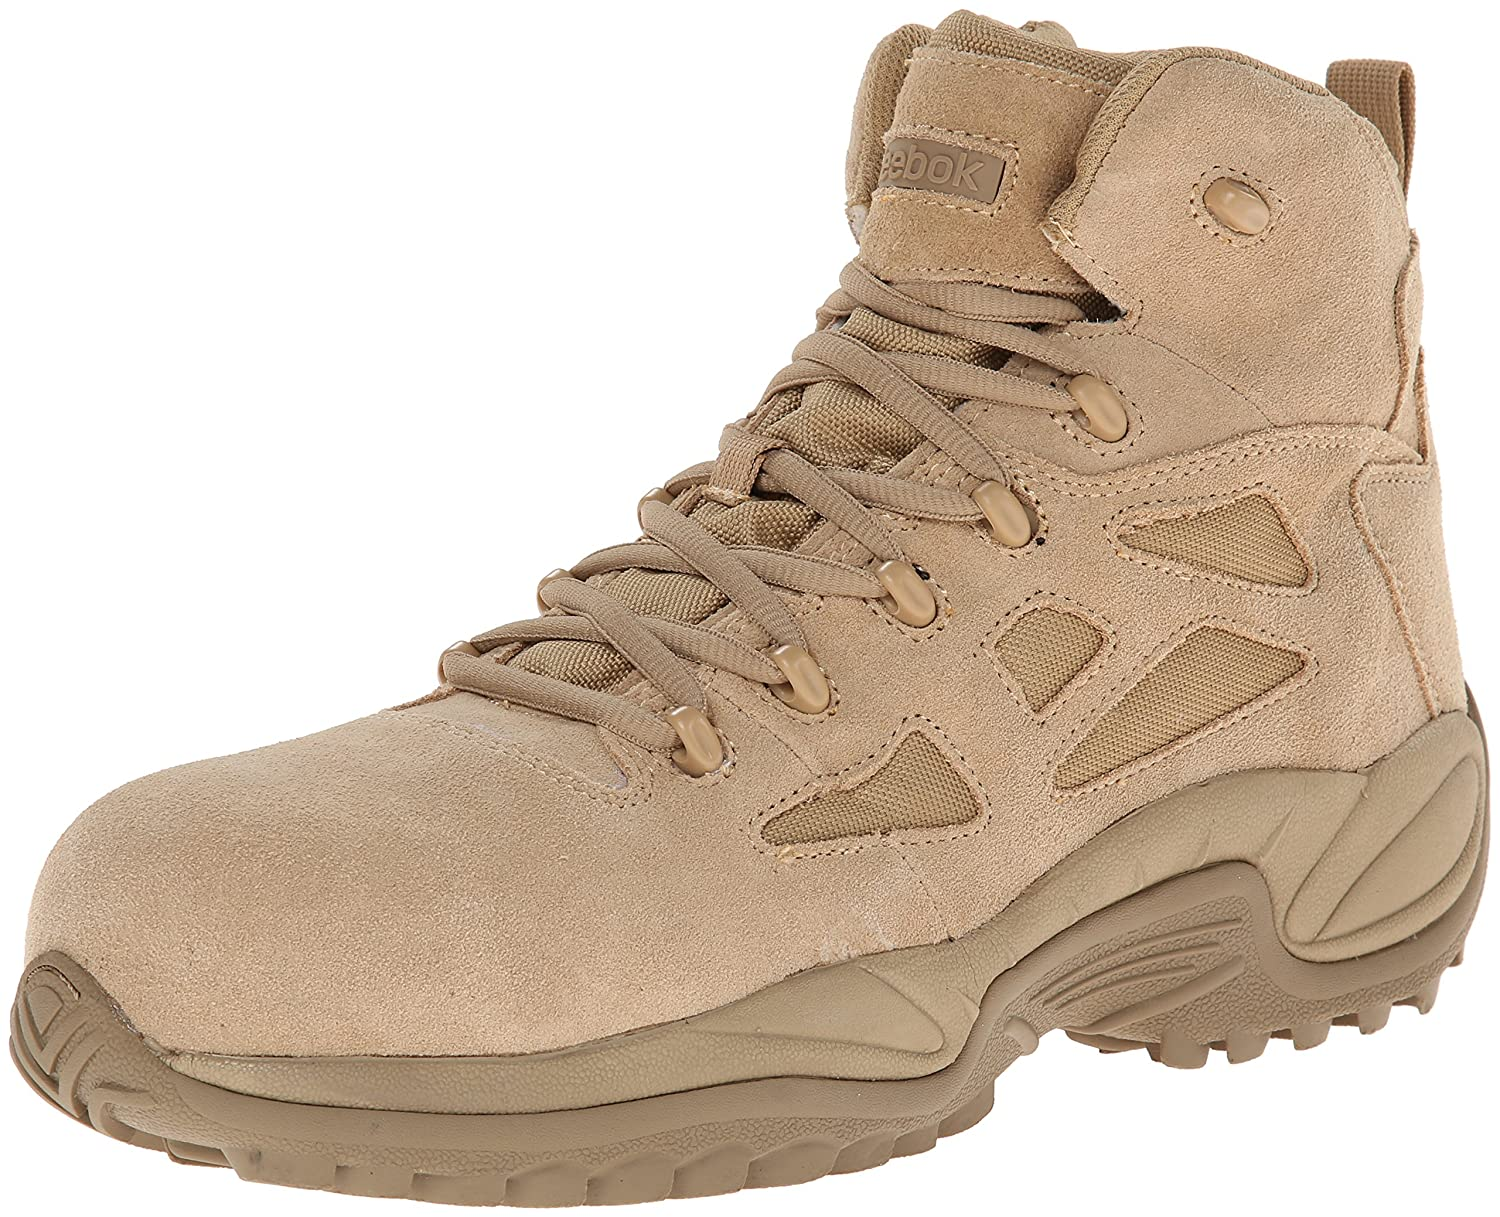 Reebok Work Duty Mens Rapid Response RB RB8694 6